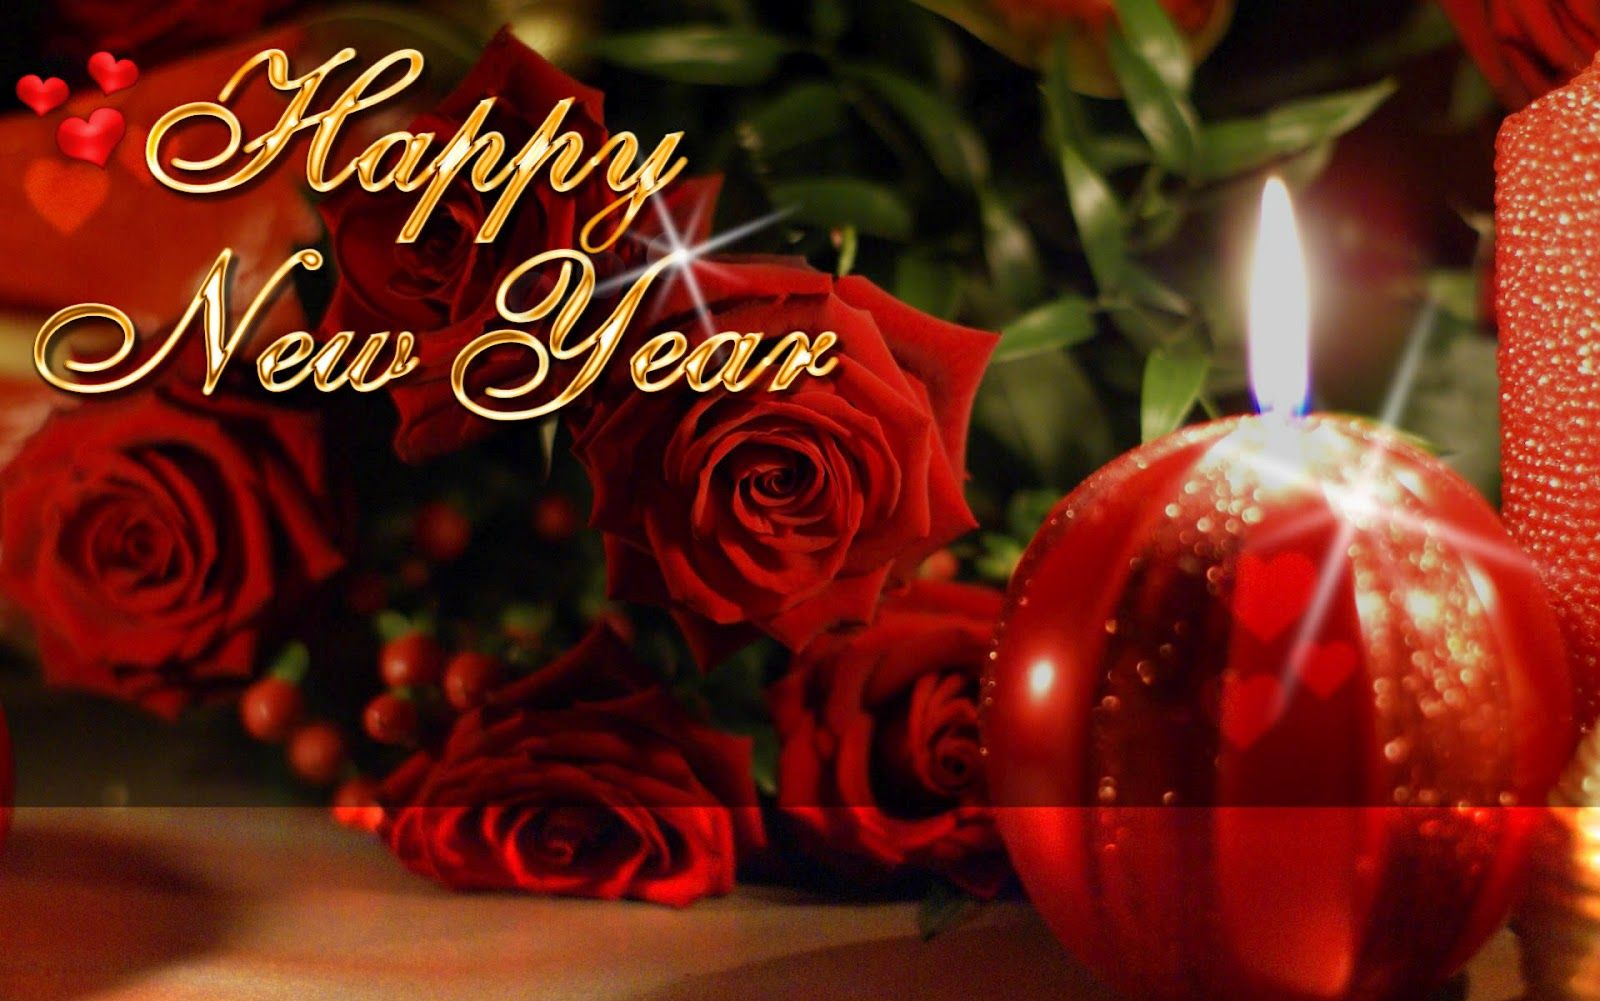 Happy new year images happy new year month january holidays happy new year 2015 red rose happy new year 2015 happy new year quote happy new year greeting kristyandbryce Choice Image